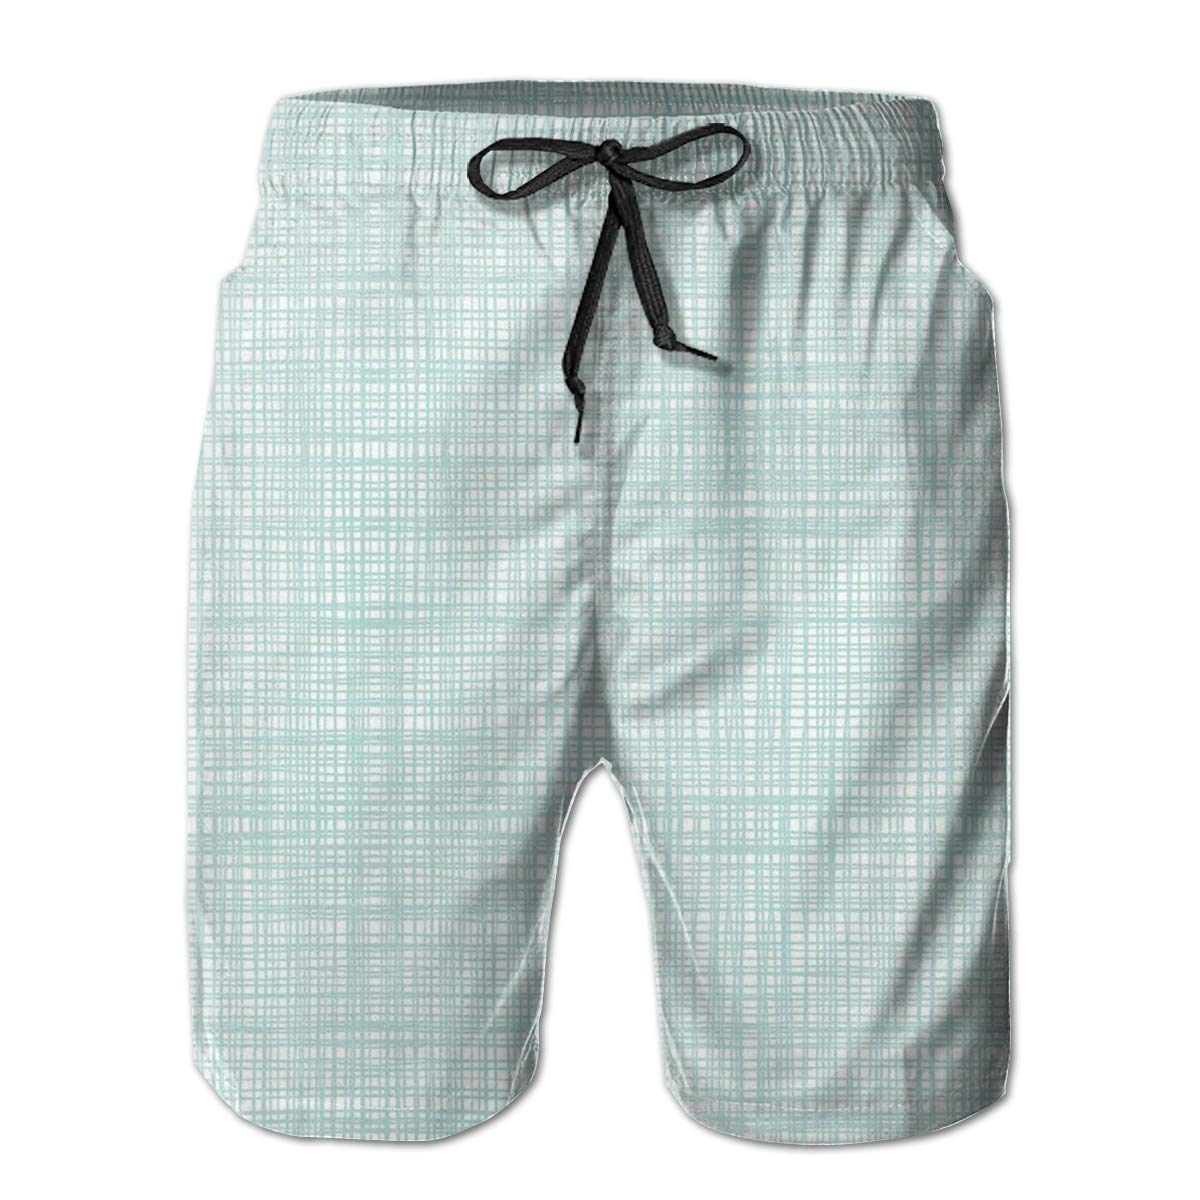 FASUWAVE Mens Swim Trunks Quick Dry with Mesh Lining Blue Crosshatch Mens Bathing Suits